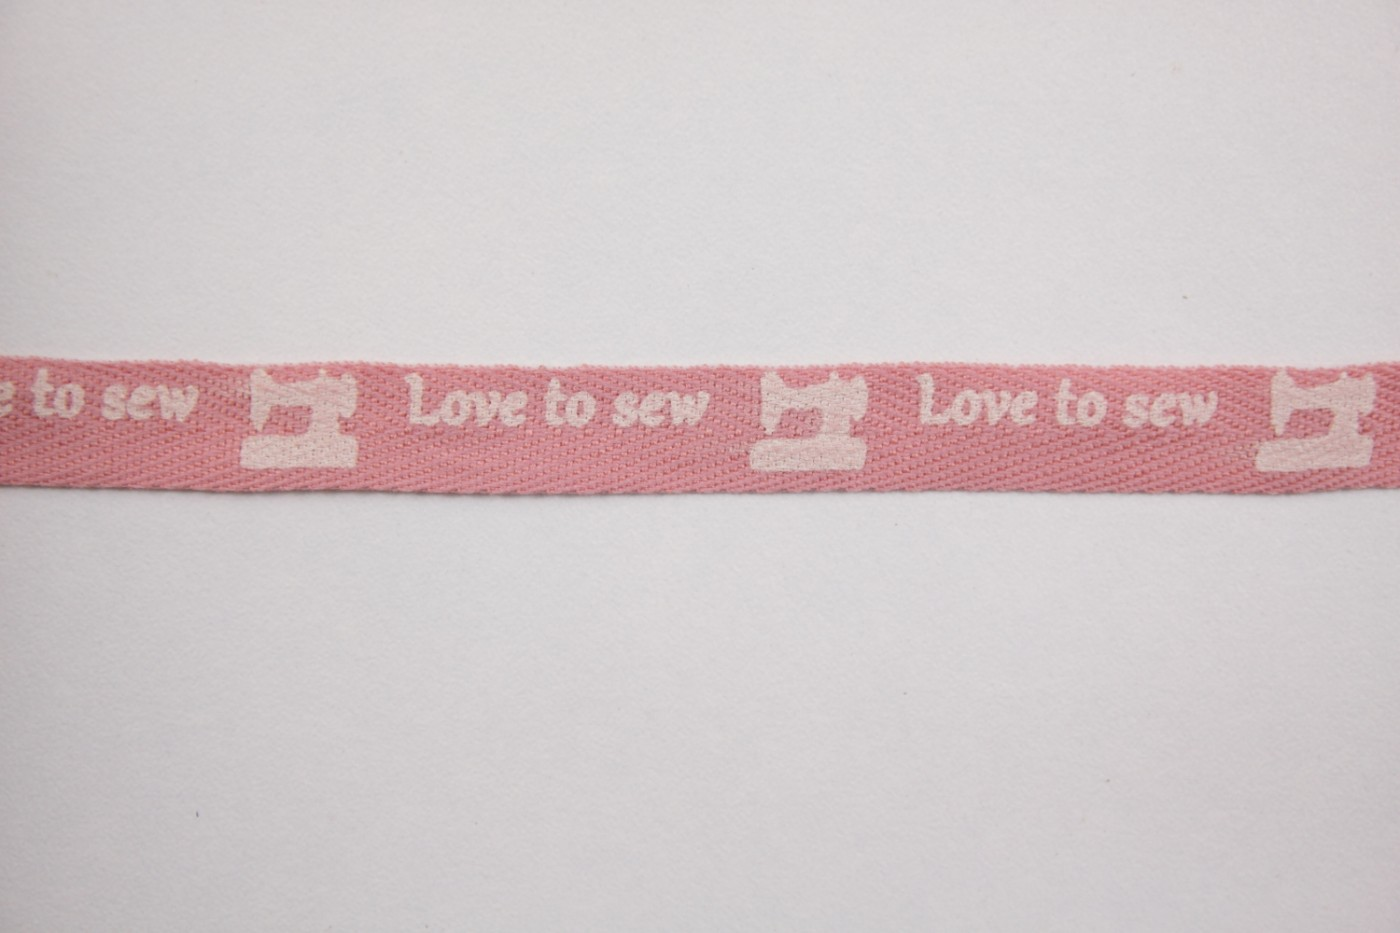 oudroze-love to sew-naaimachines-11mm-ka